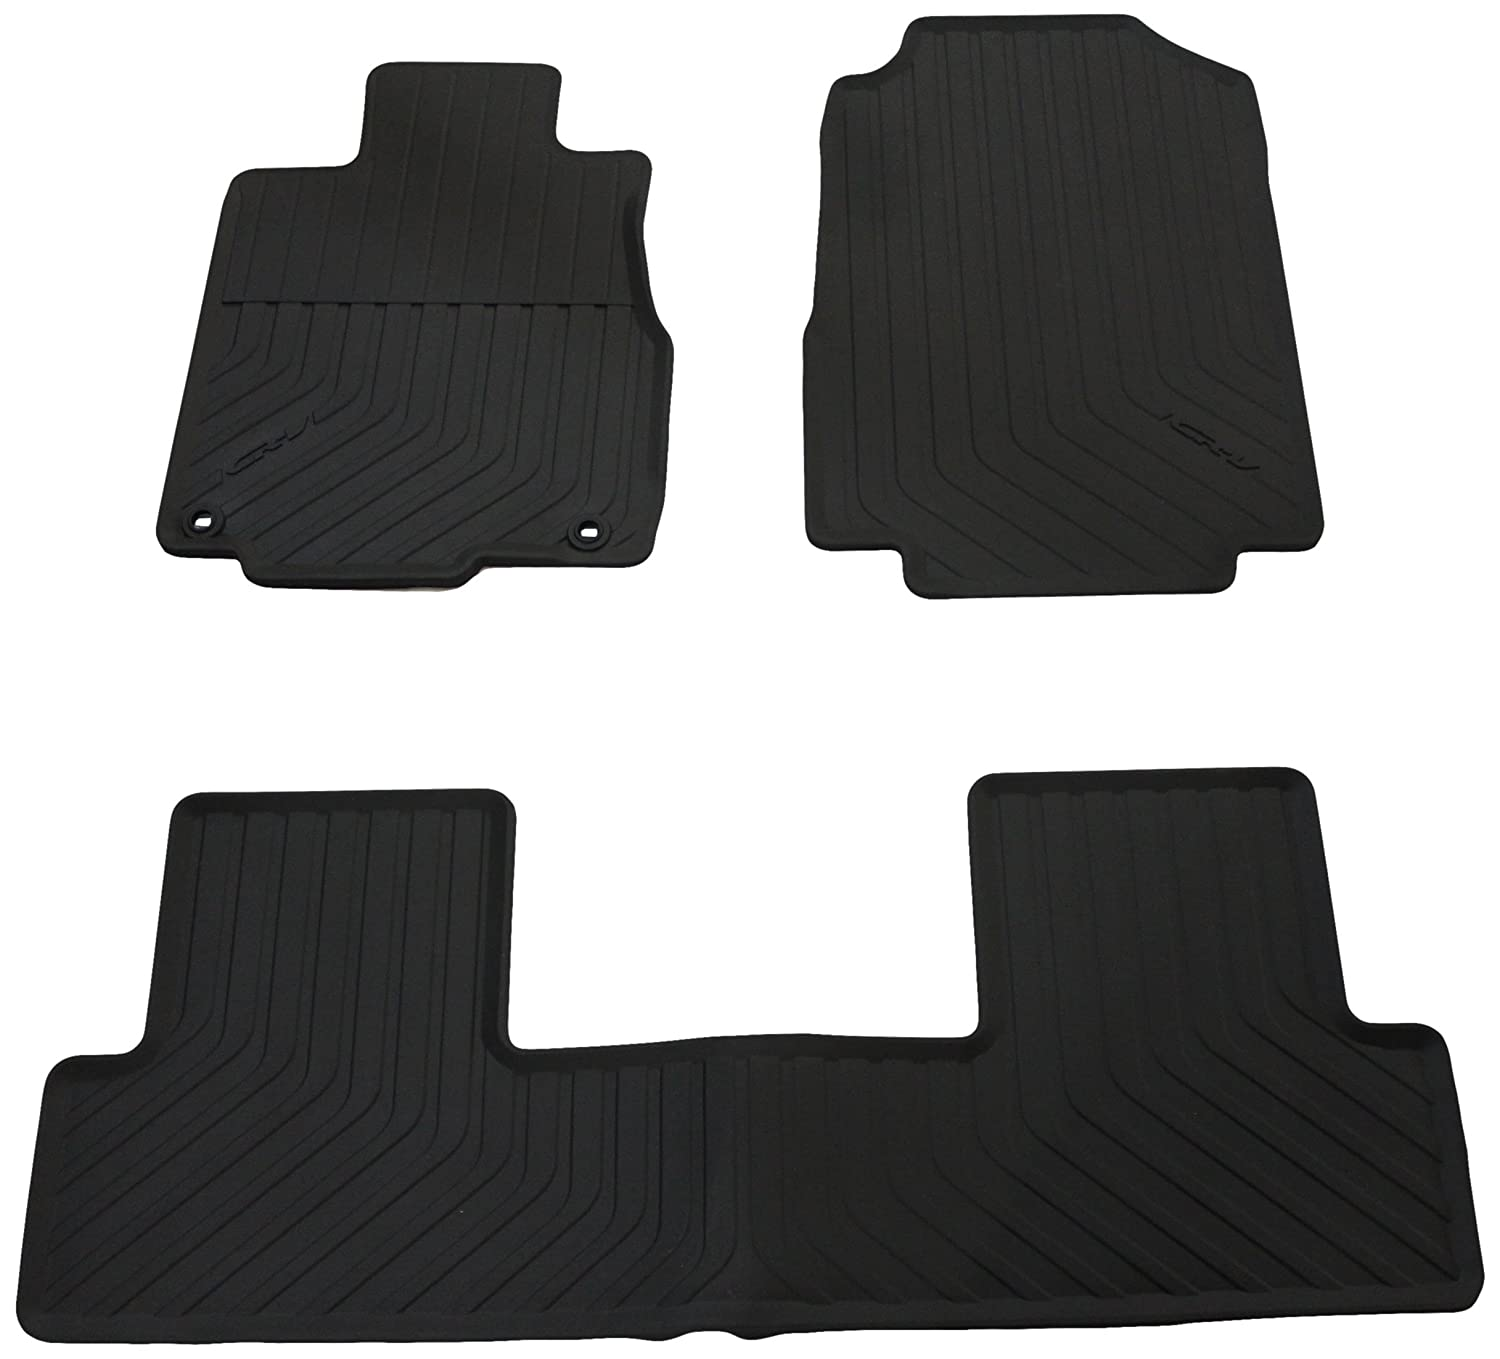 Amazon.com: Genuine Honda Accessories 08P13-T0A-110A All Season Floor Mat  for Select CR-V Models: Automotive